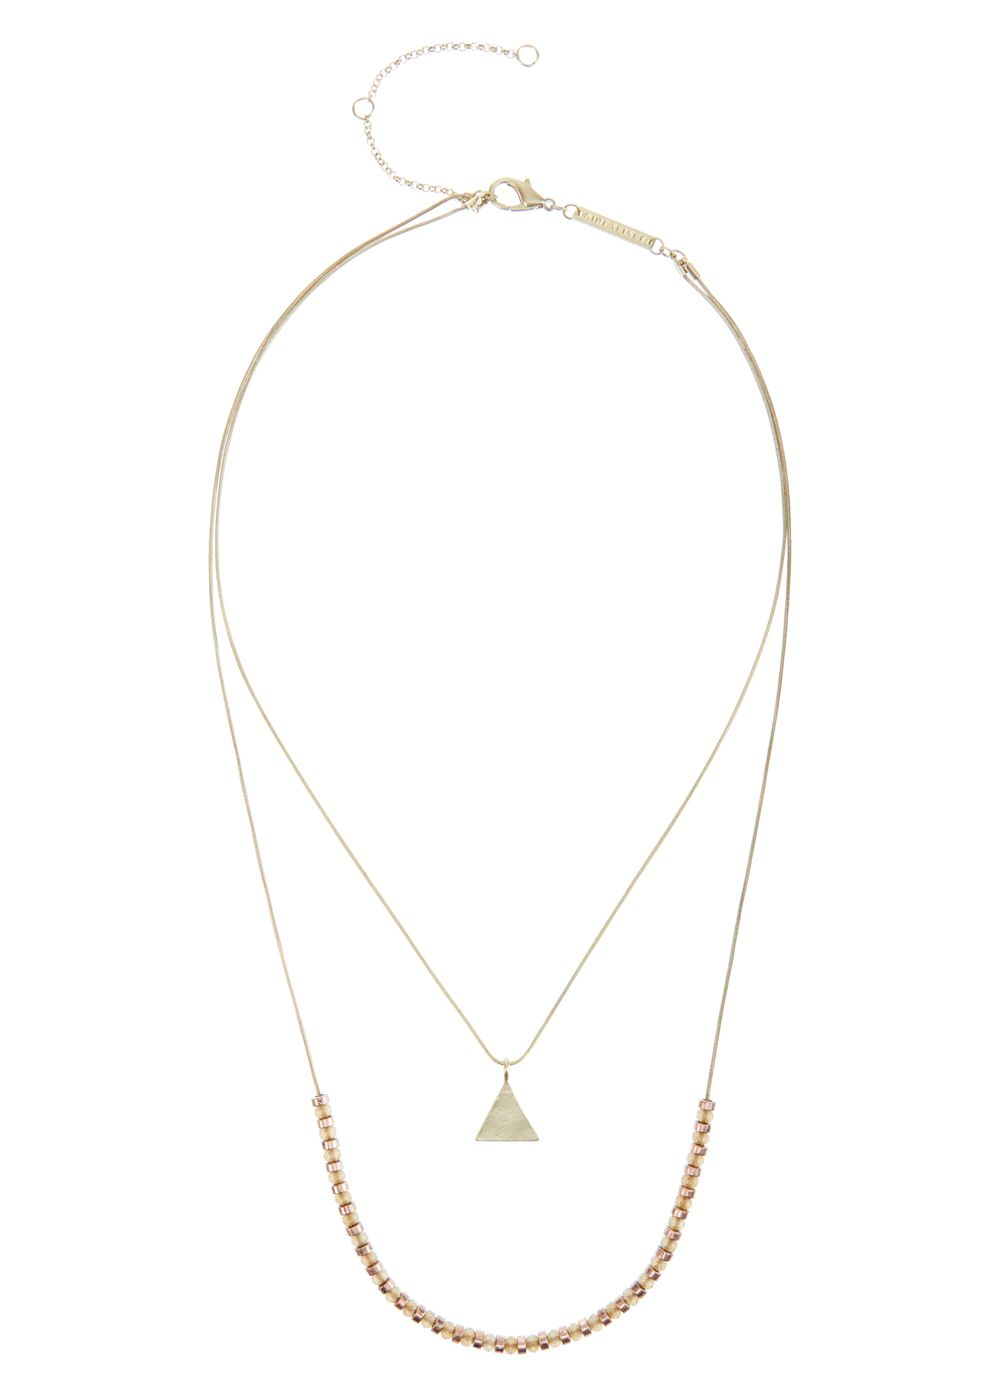 Gold & rose gold double layer necklace